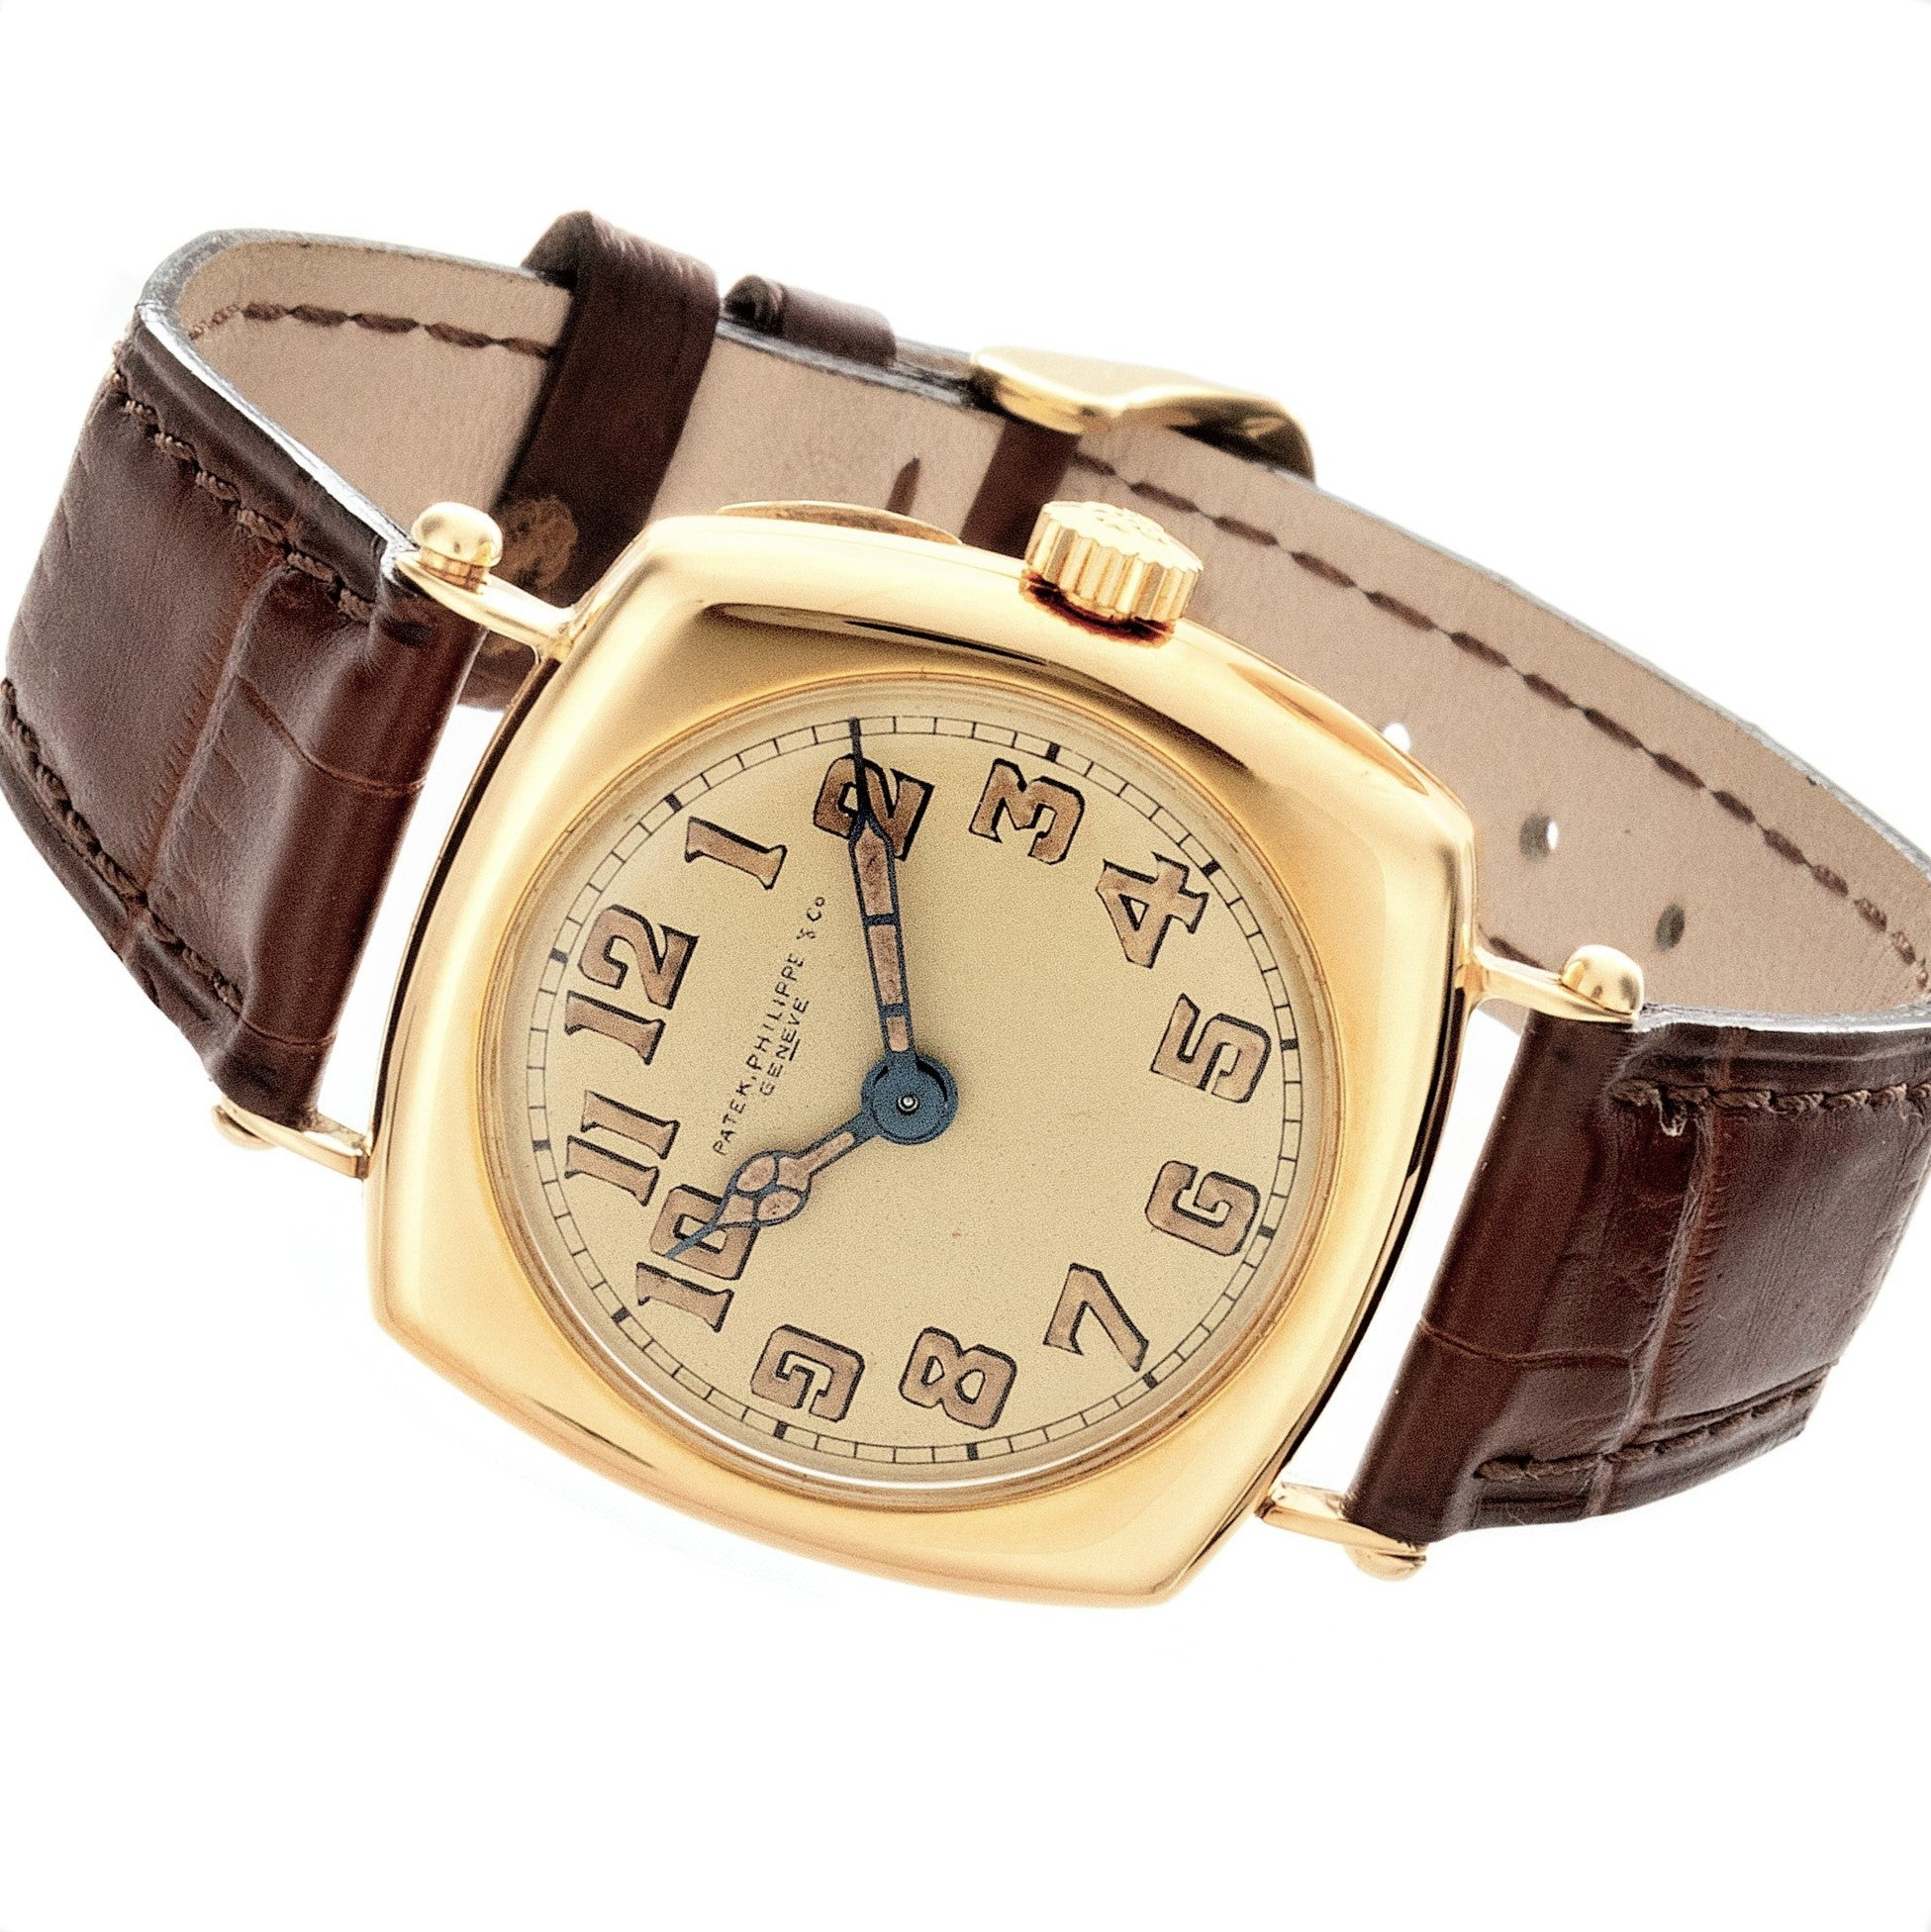 Patek Philippe No. 8 Cushion Vintage Watch Circa 1913